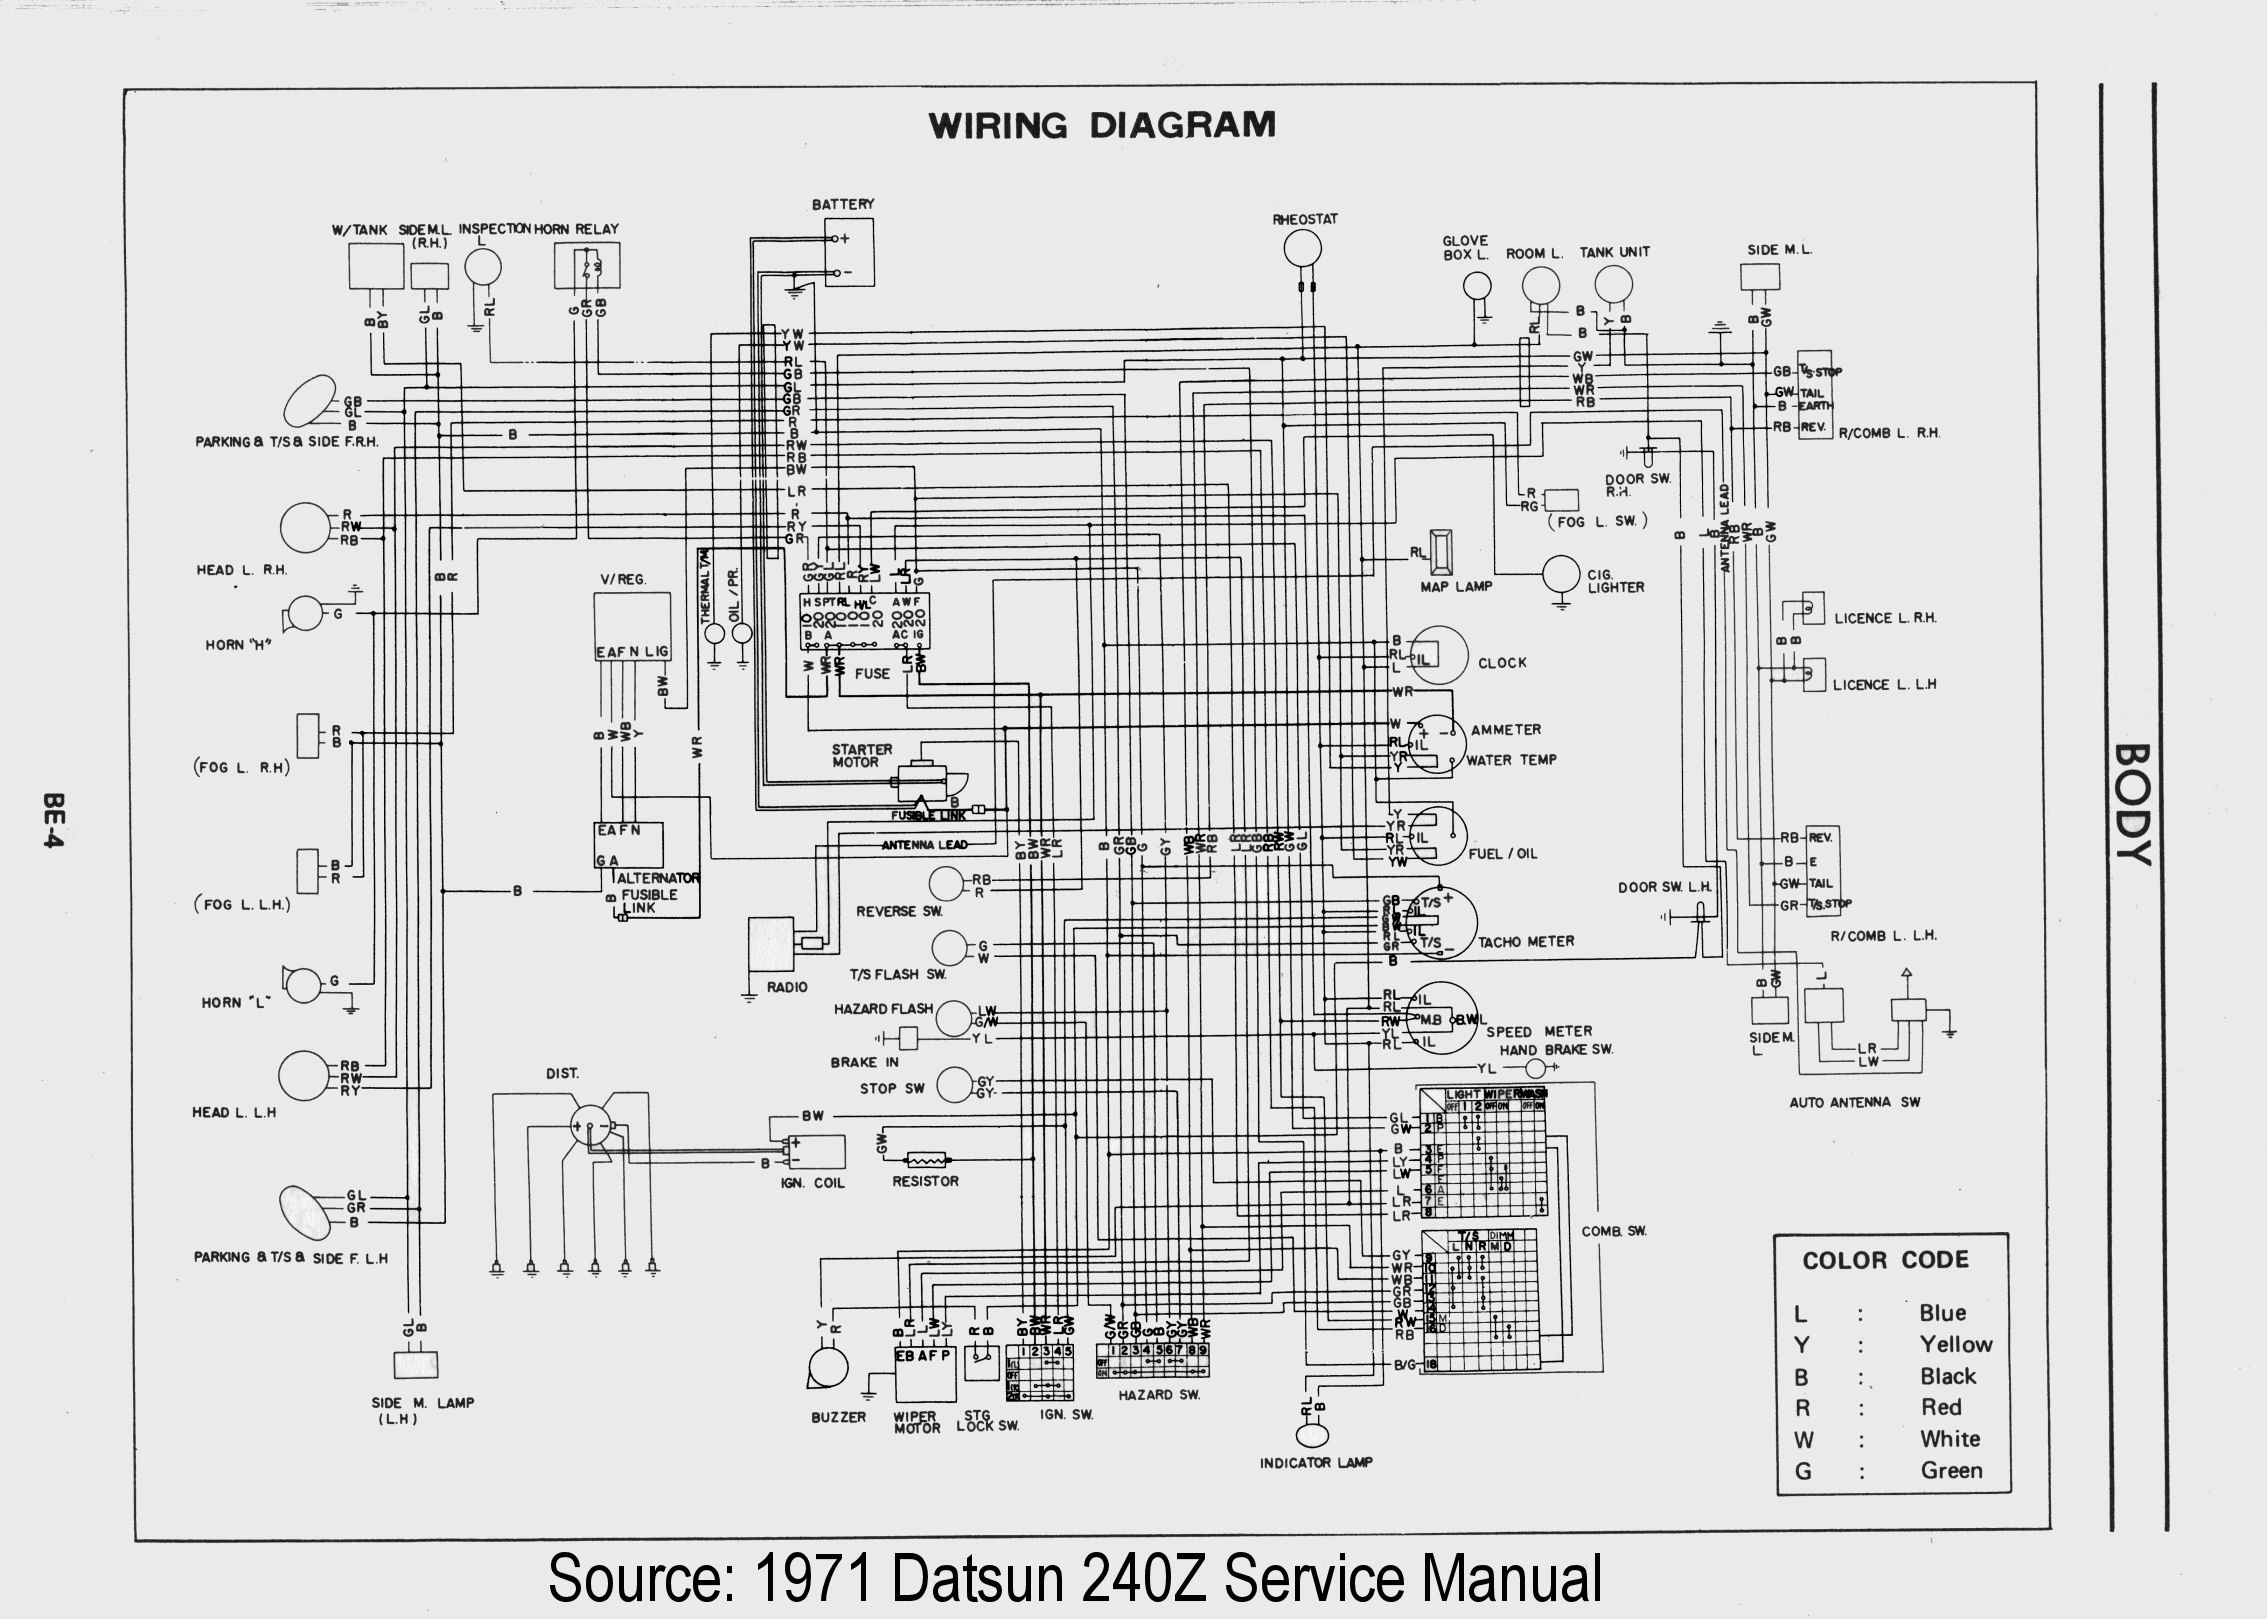 Wiring Diagram HiRes 2 generic wiring troubleshooting checklist woodworkerb Custom Automotive Wiring Harness Kits at eliteediting.co